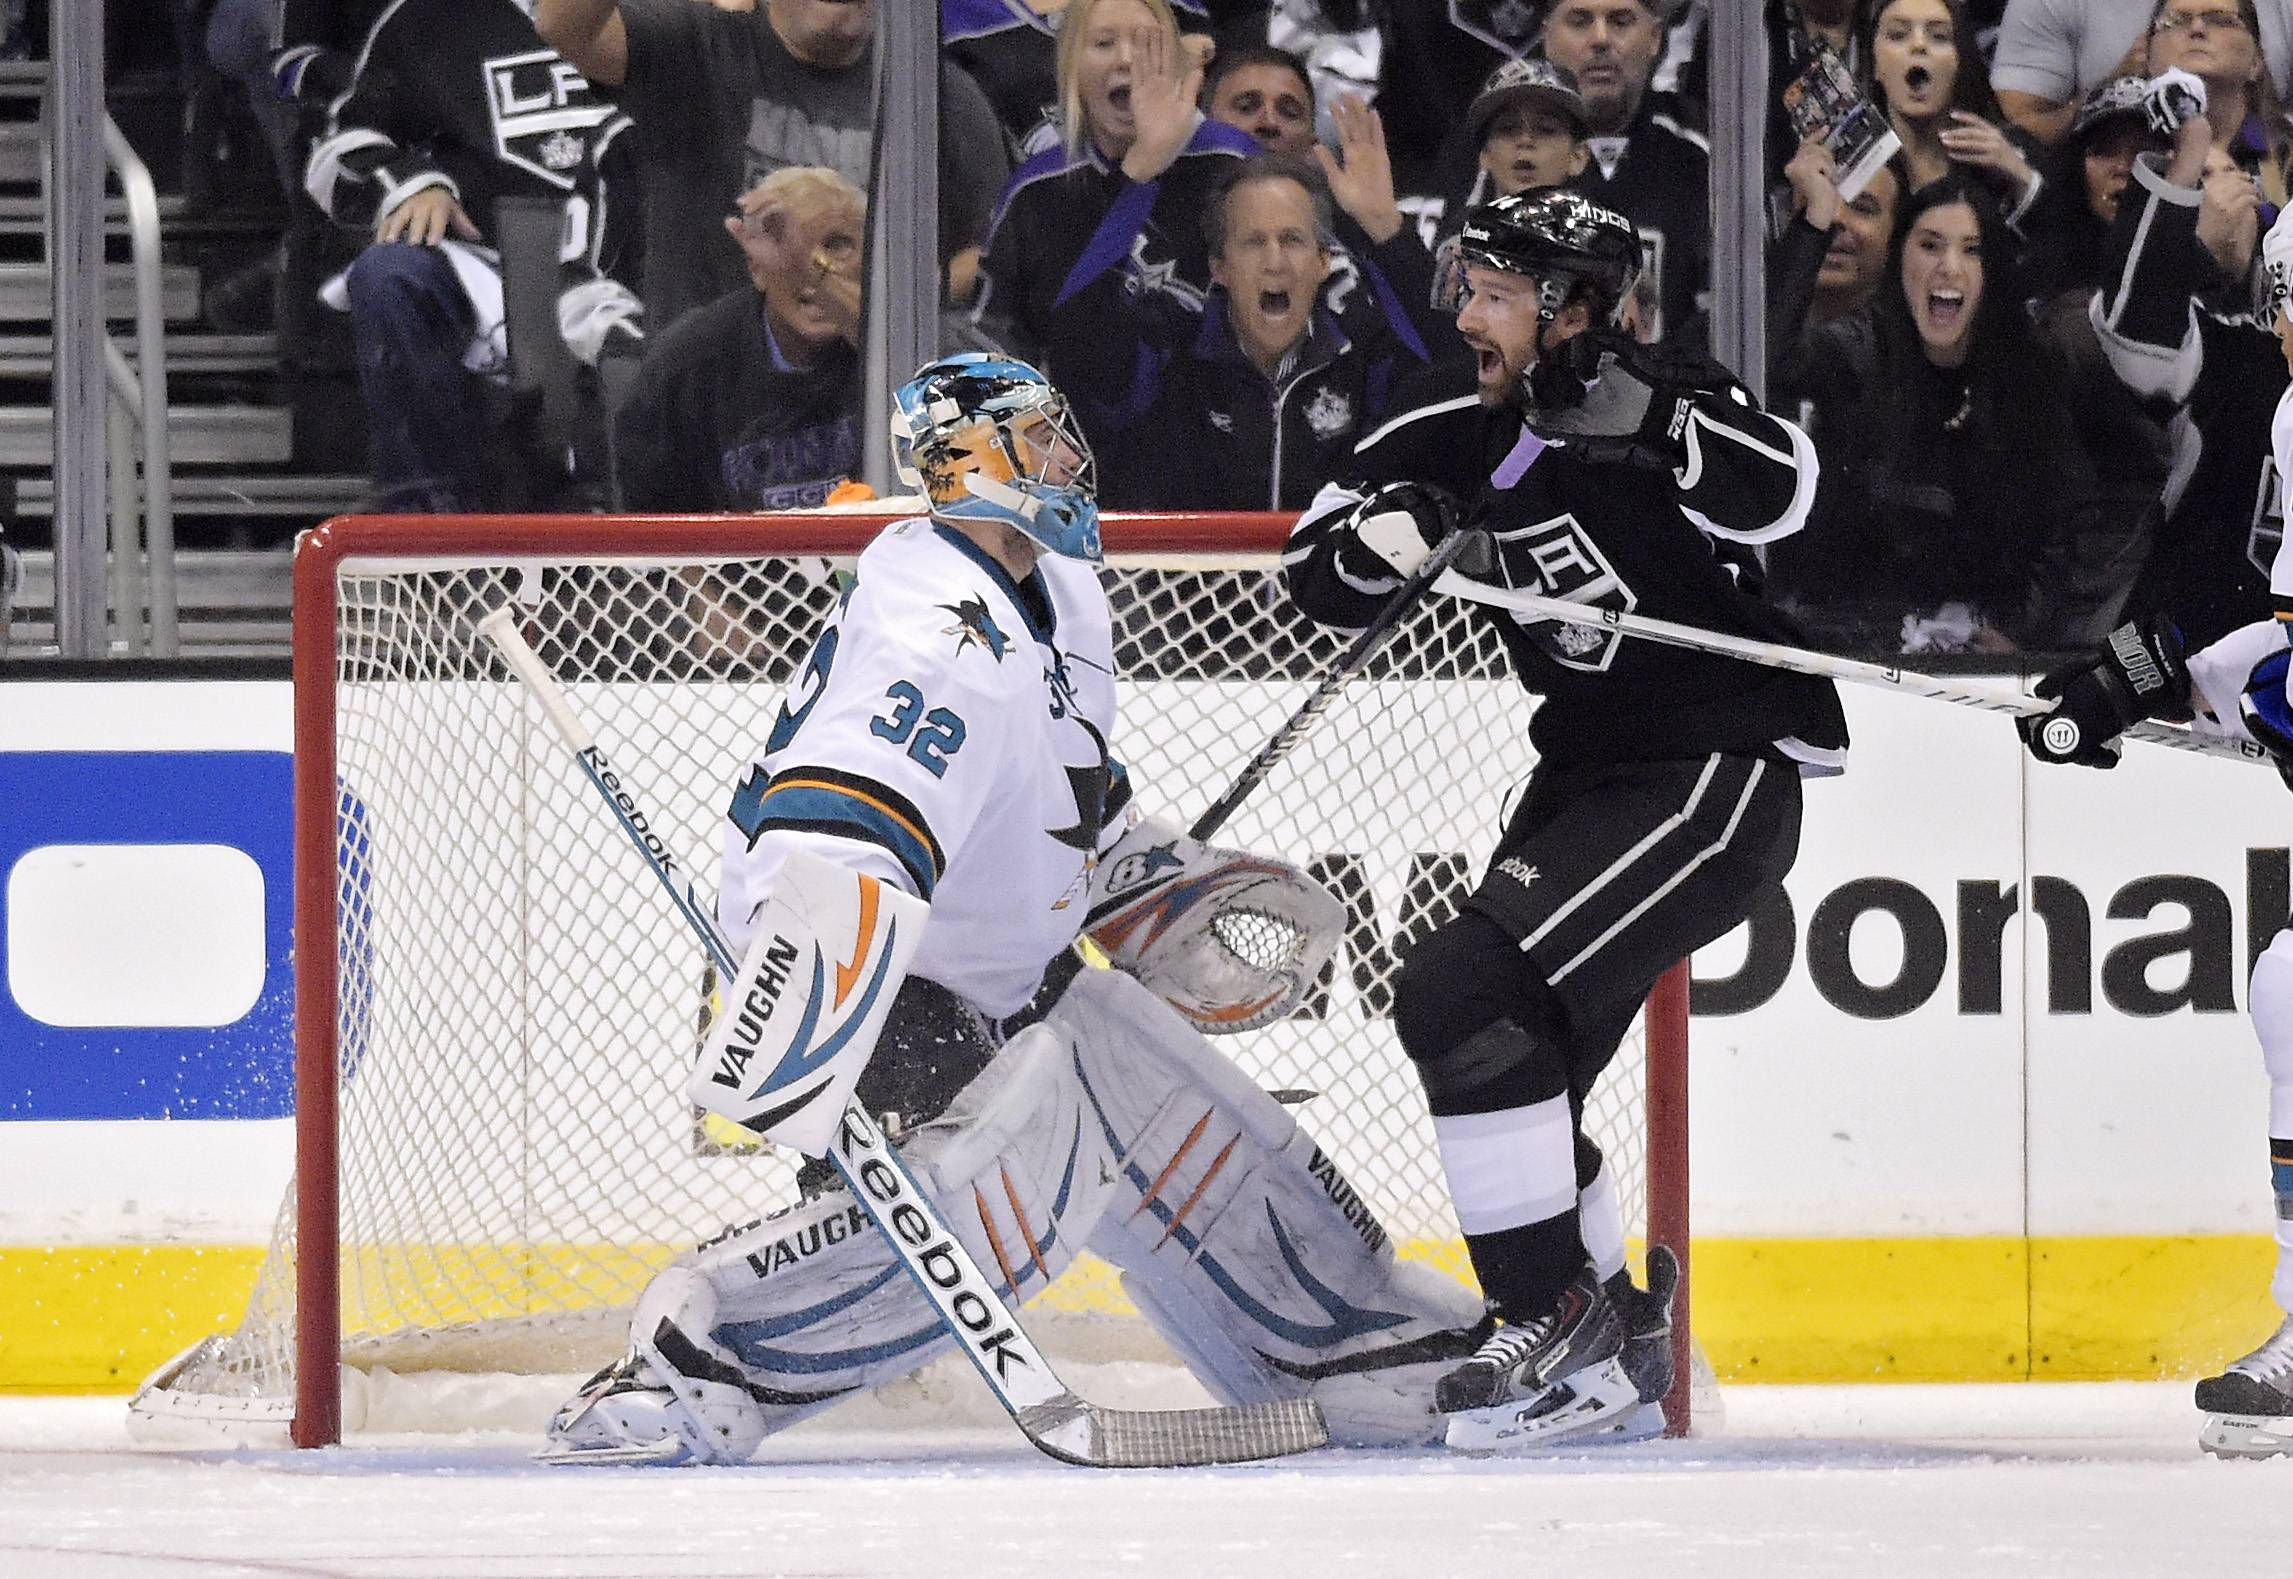 Los Angeles Kings right wing Justin Williams, right, celebrates his goal against San Jose Sharks goalie Alex Stalock during the first period in Game 6 of their NHL hockey first-round playoff series, Monday.